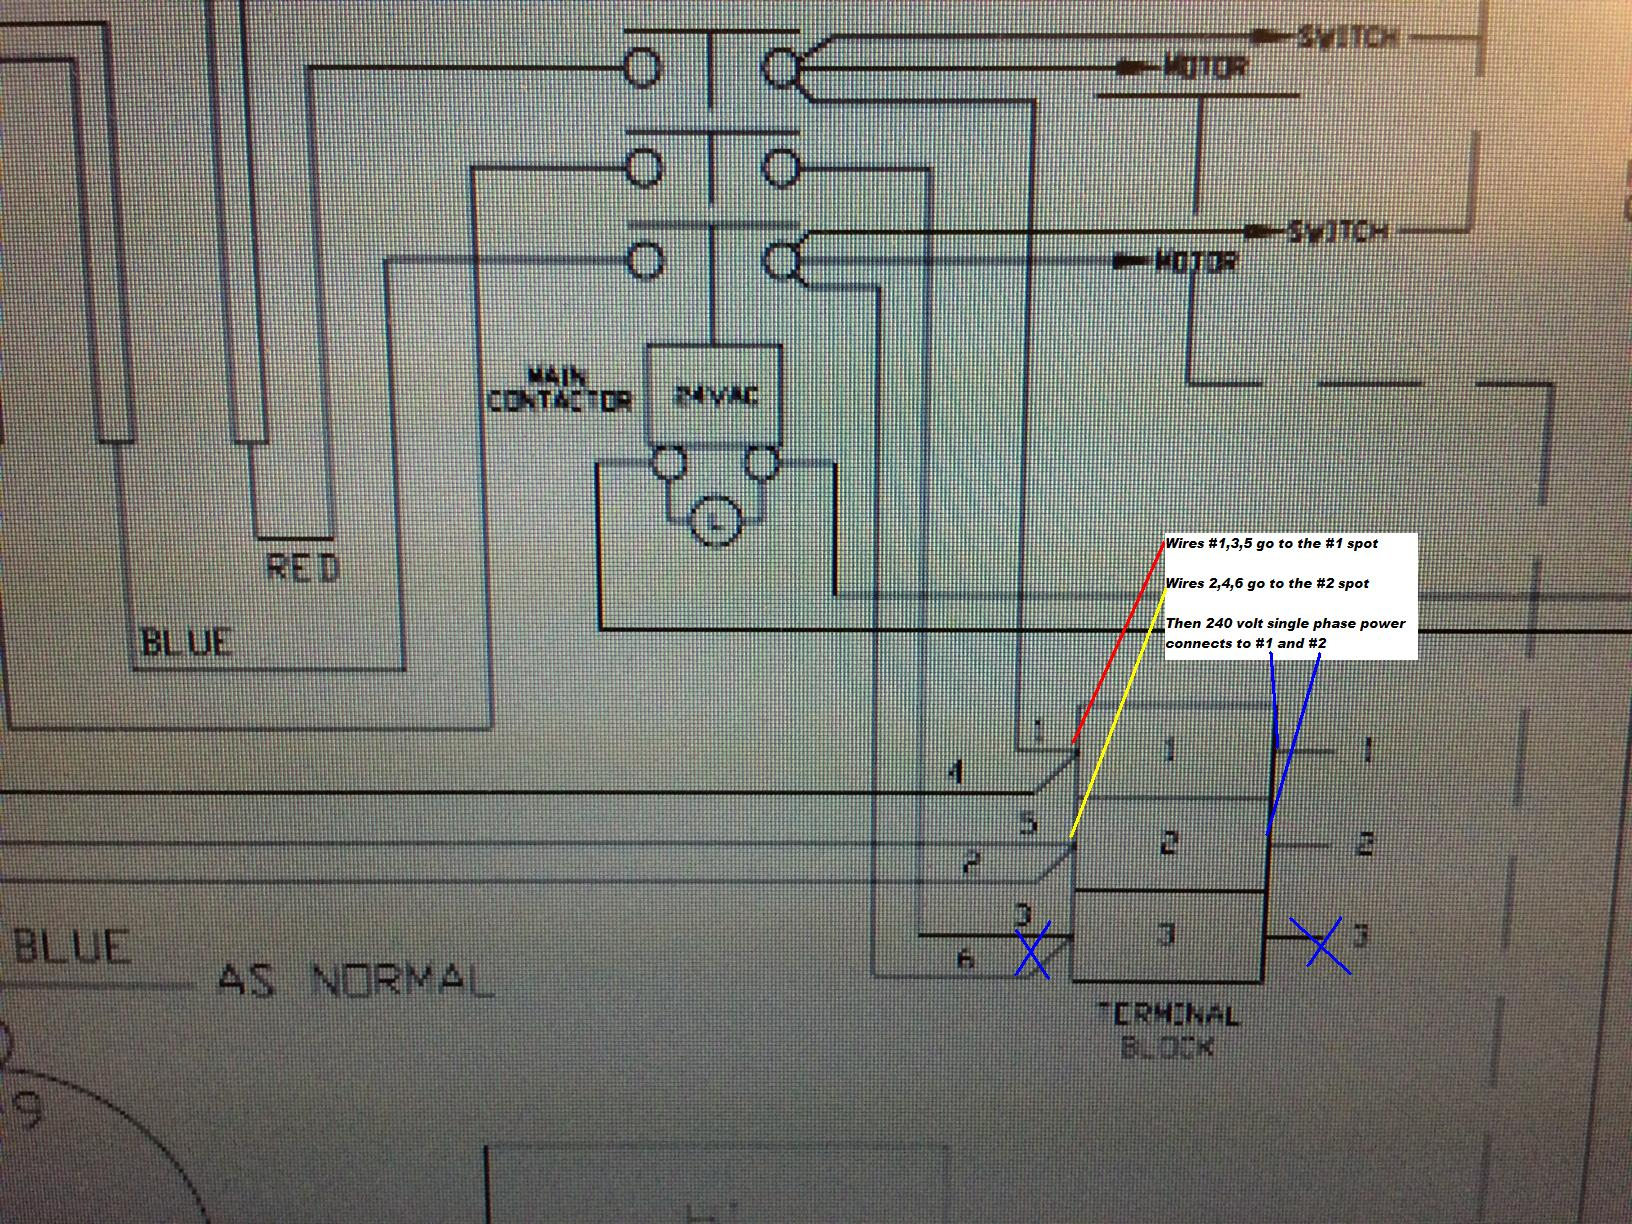 2014 12 09_141819_lang_ehs pt_2 i have a lang ehs pt convection oven that i got used it is wired blue m oven wiring diagram at gsmx.co